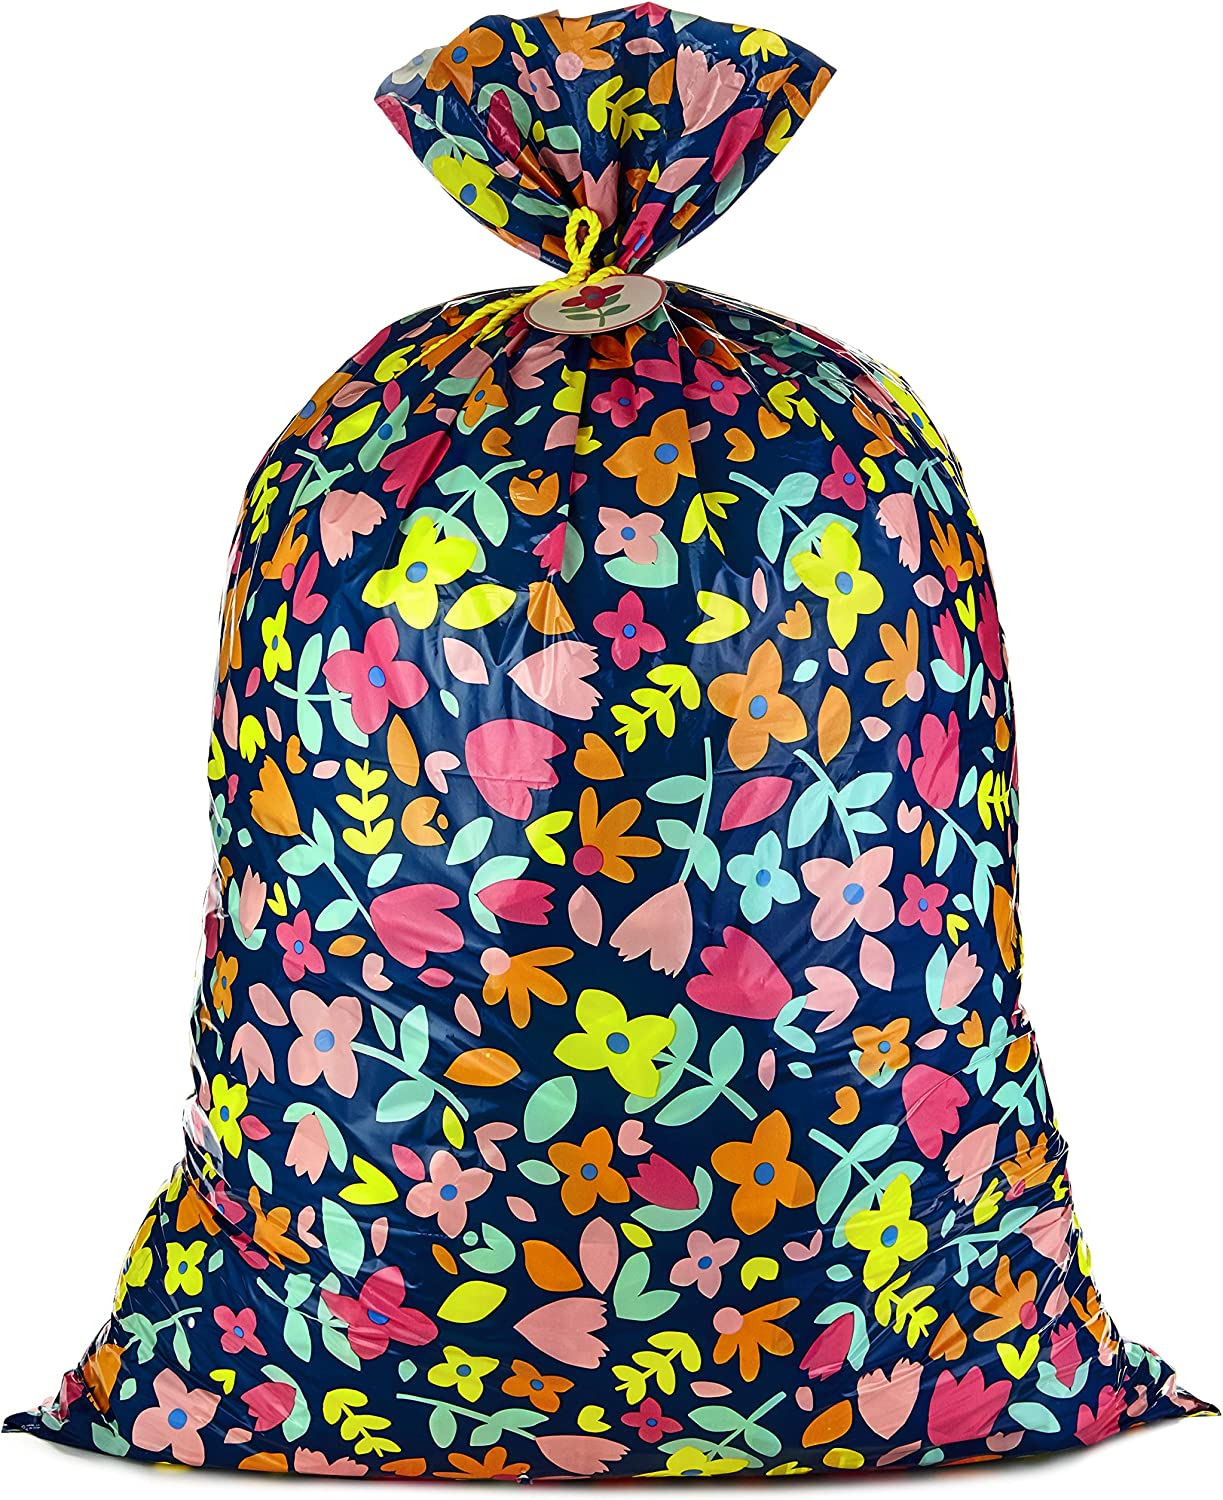 "Hallmark 56"" Jumbo XL Plastic Gift Bag (Pink and Yellow Flowers) for Birthdays, Mother's Day, Bridal Showers, Baby Showers, Engagements, Weddings and More"